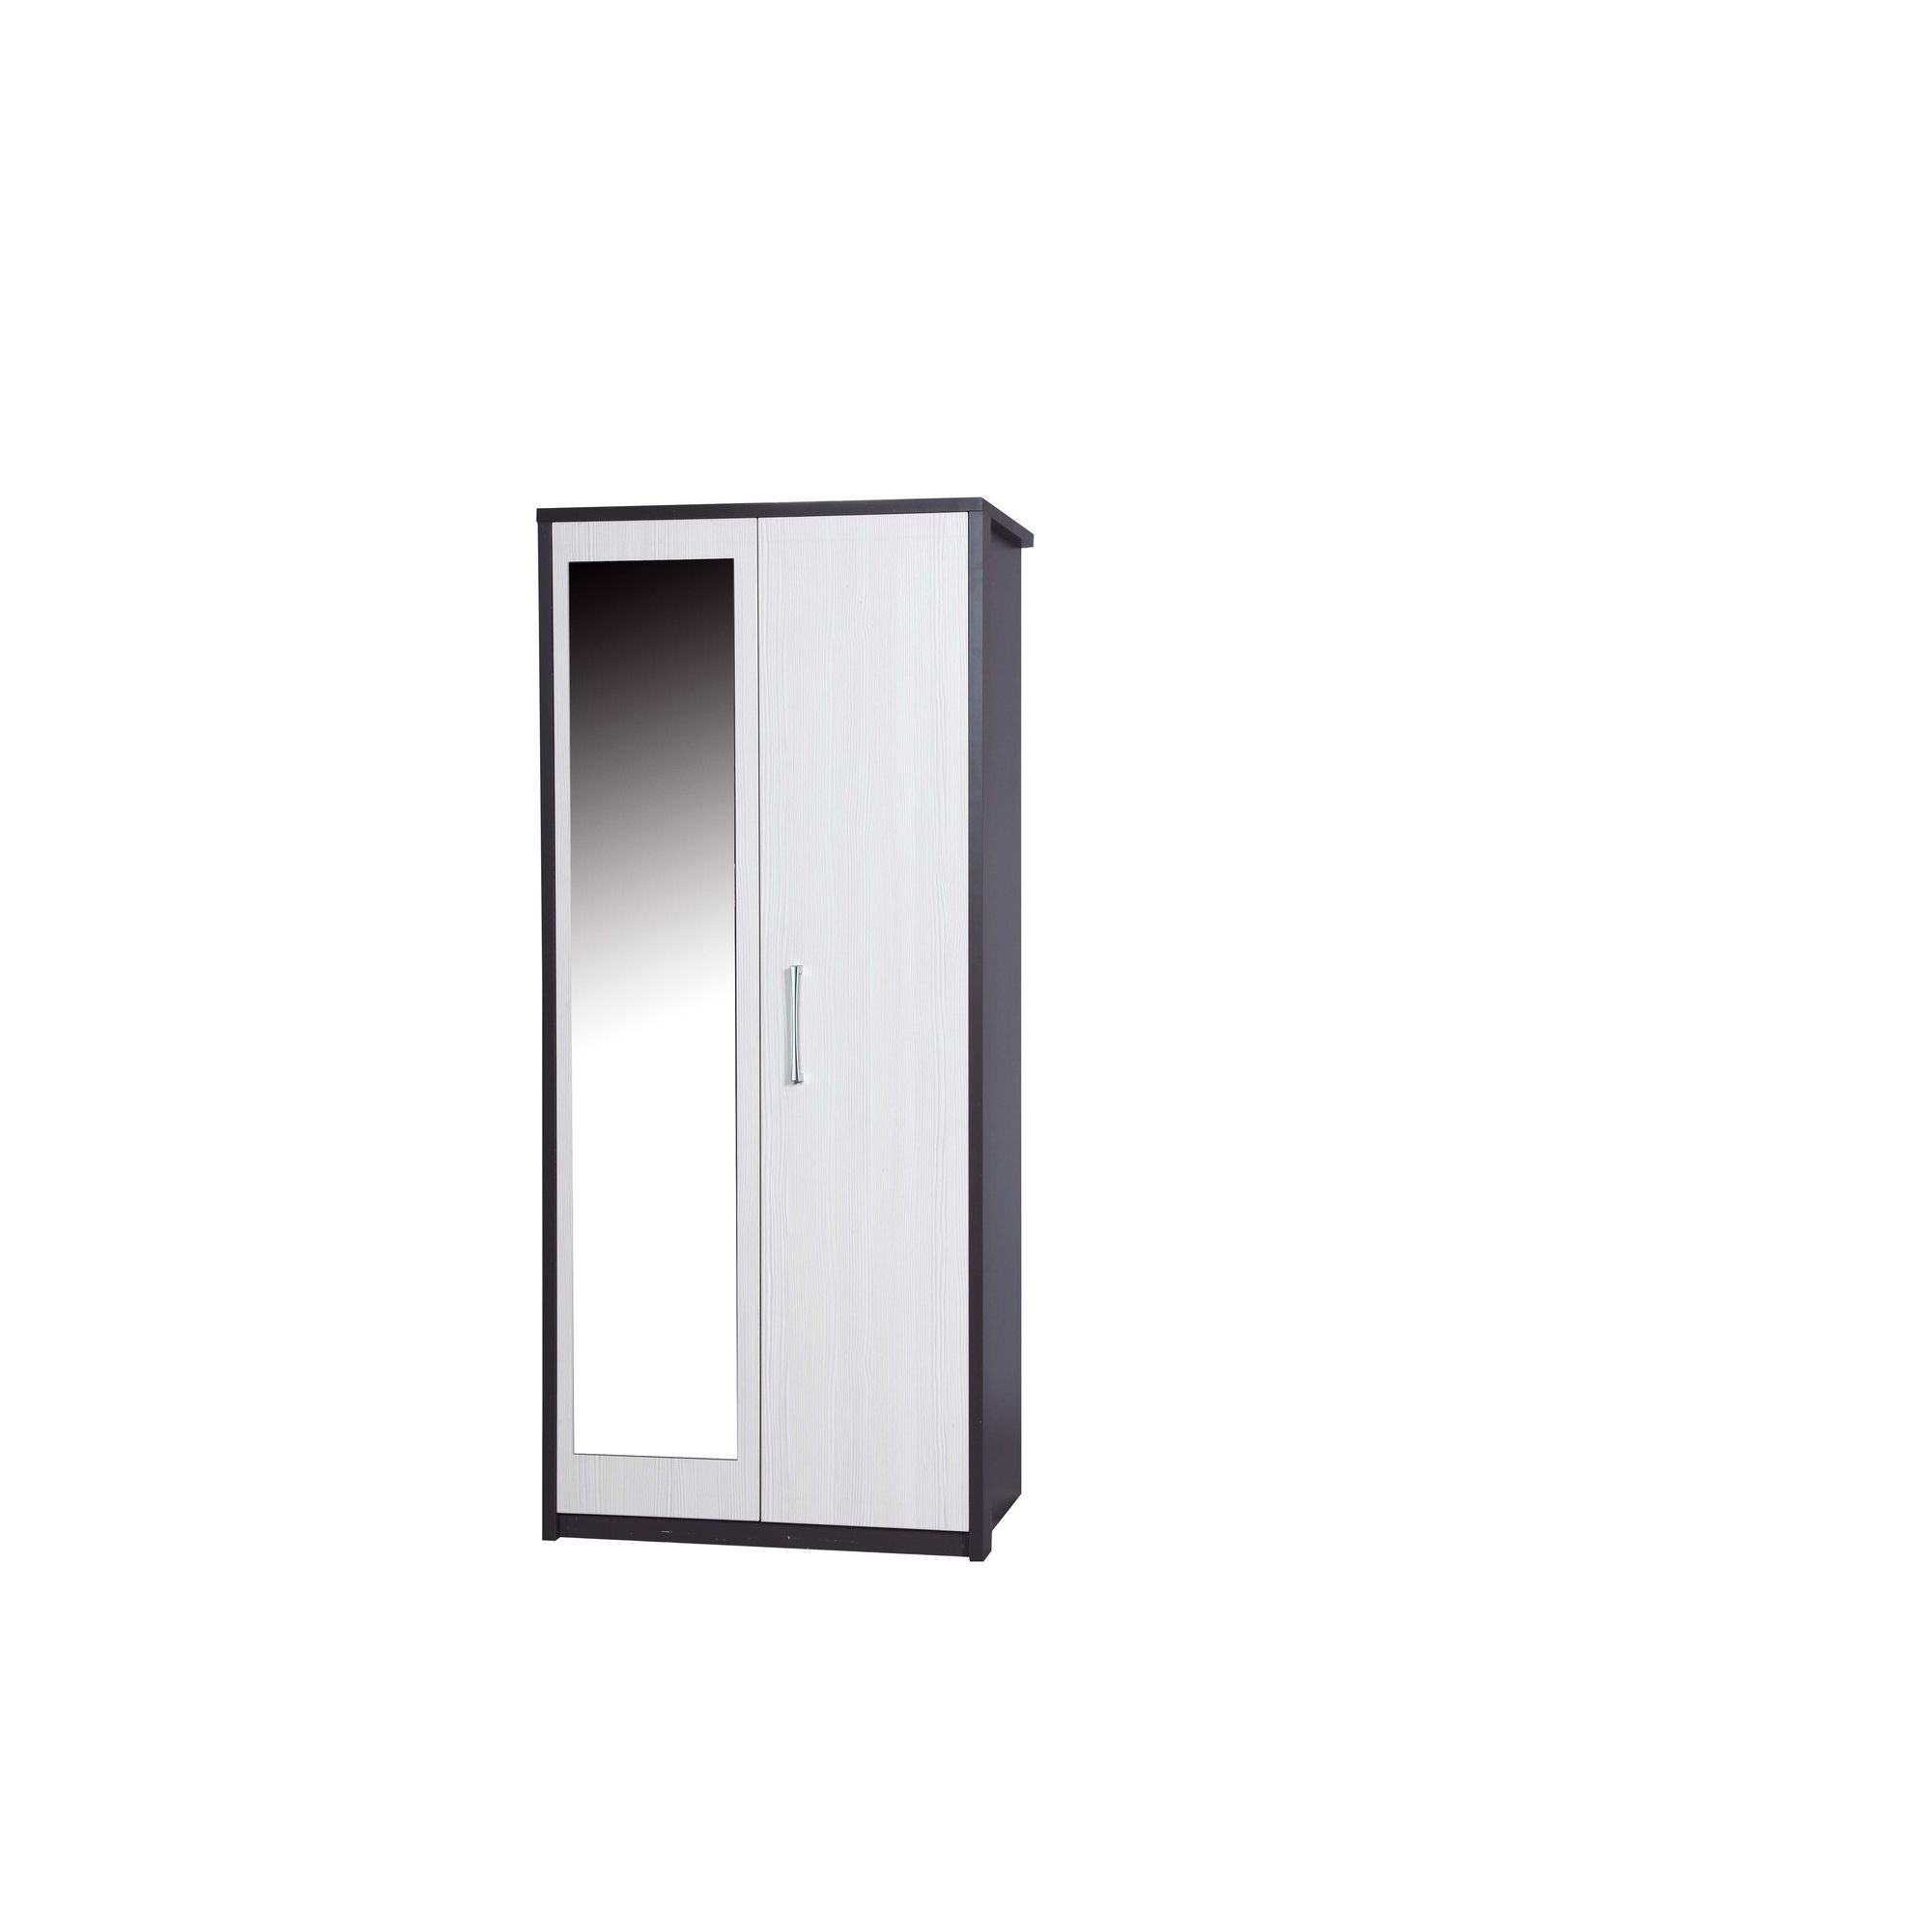 Alto Furniture Avola Double Wardrobe with Mirror - Grey Carcass With White Avola at Tesco Direct